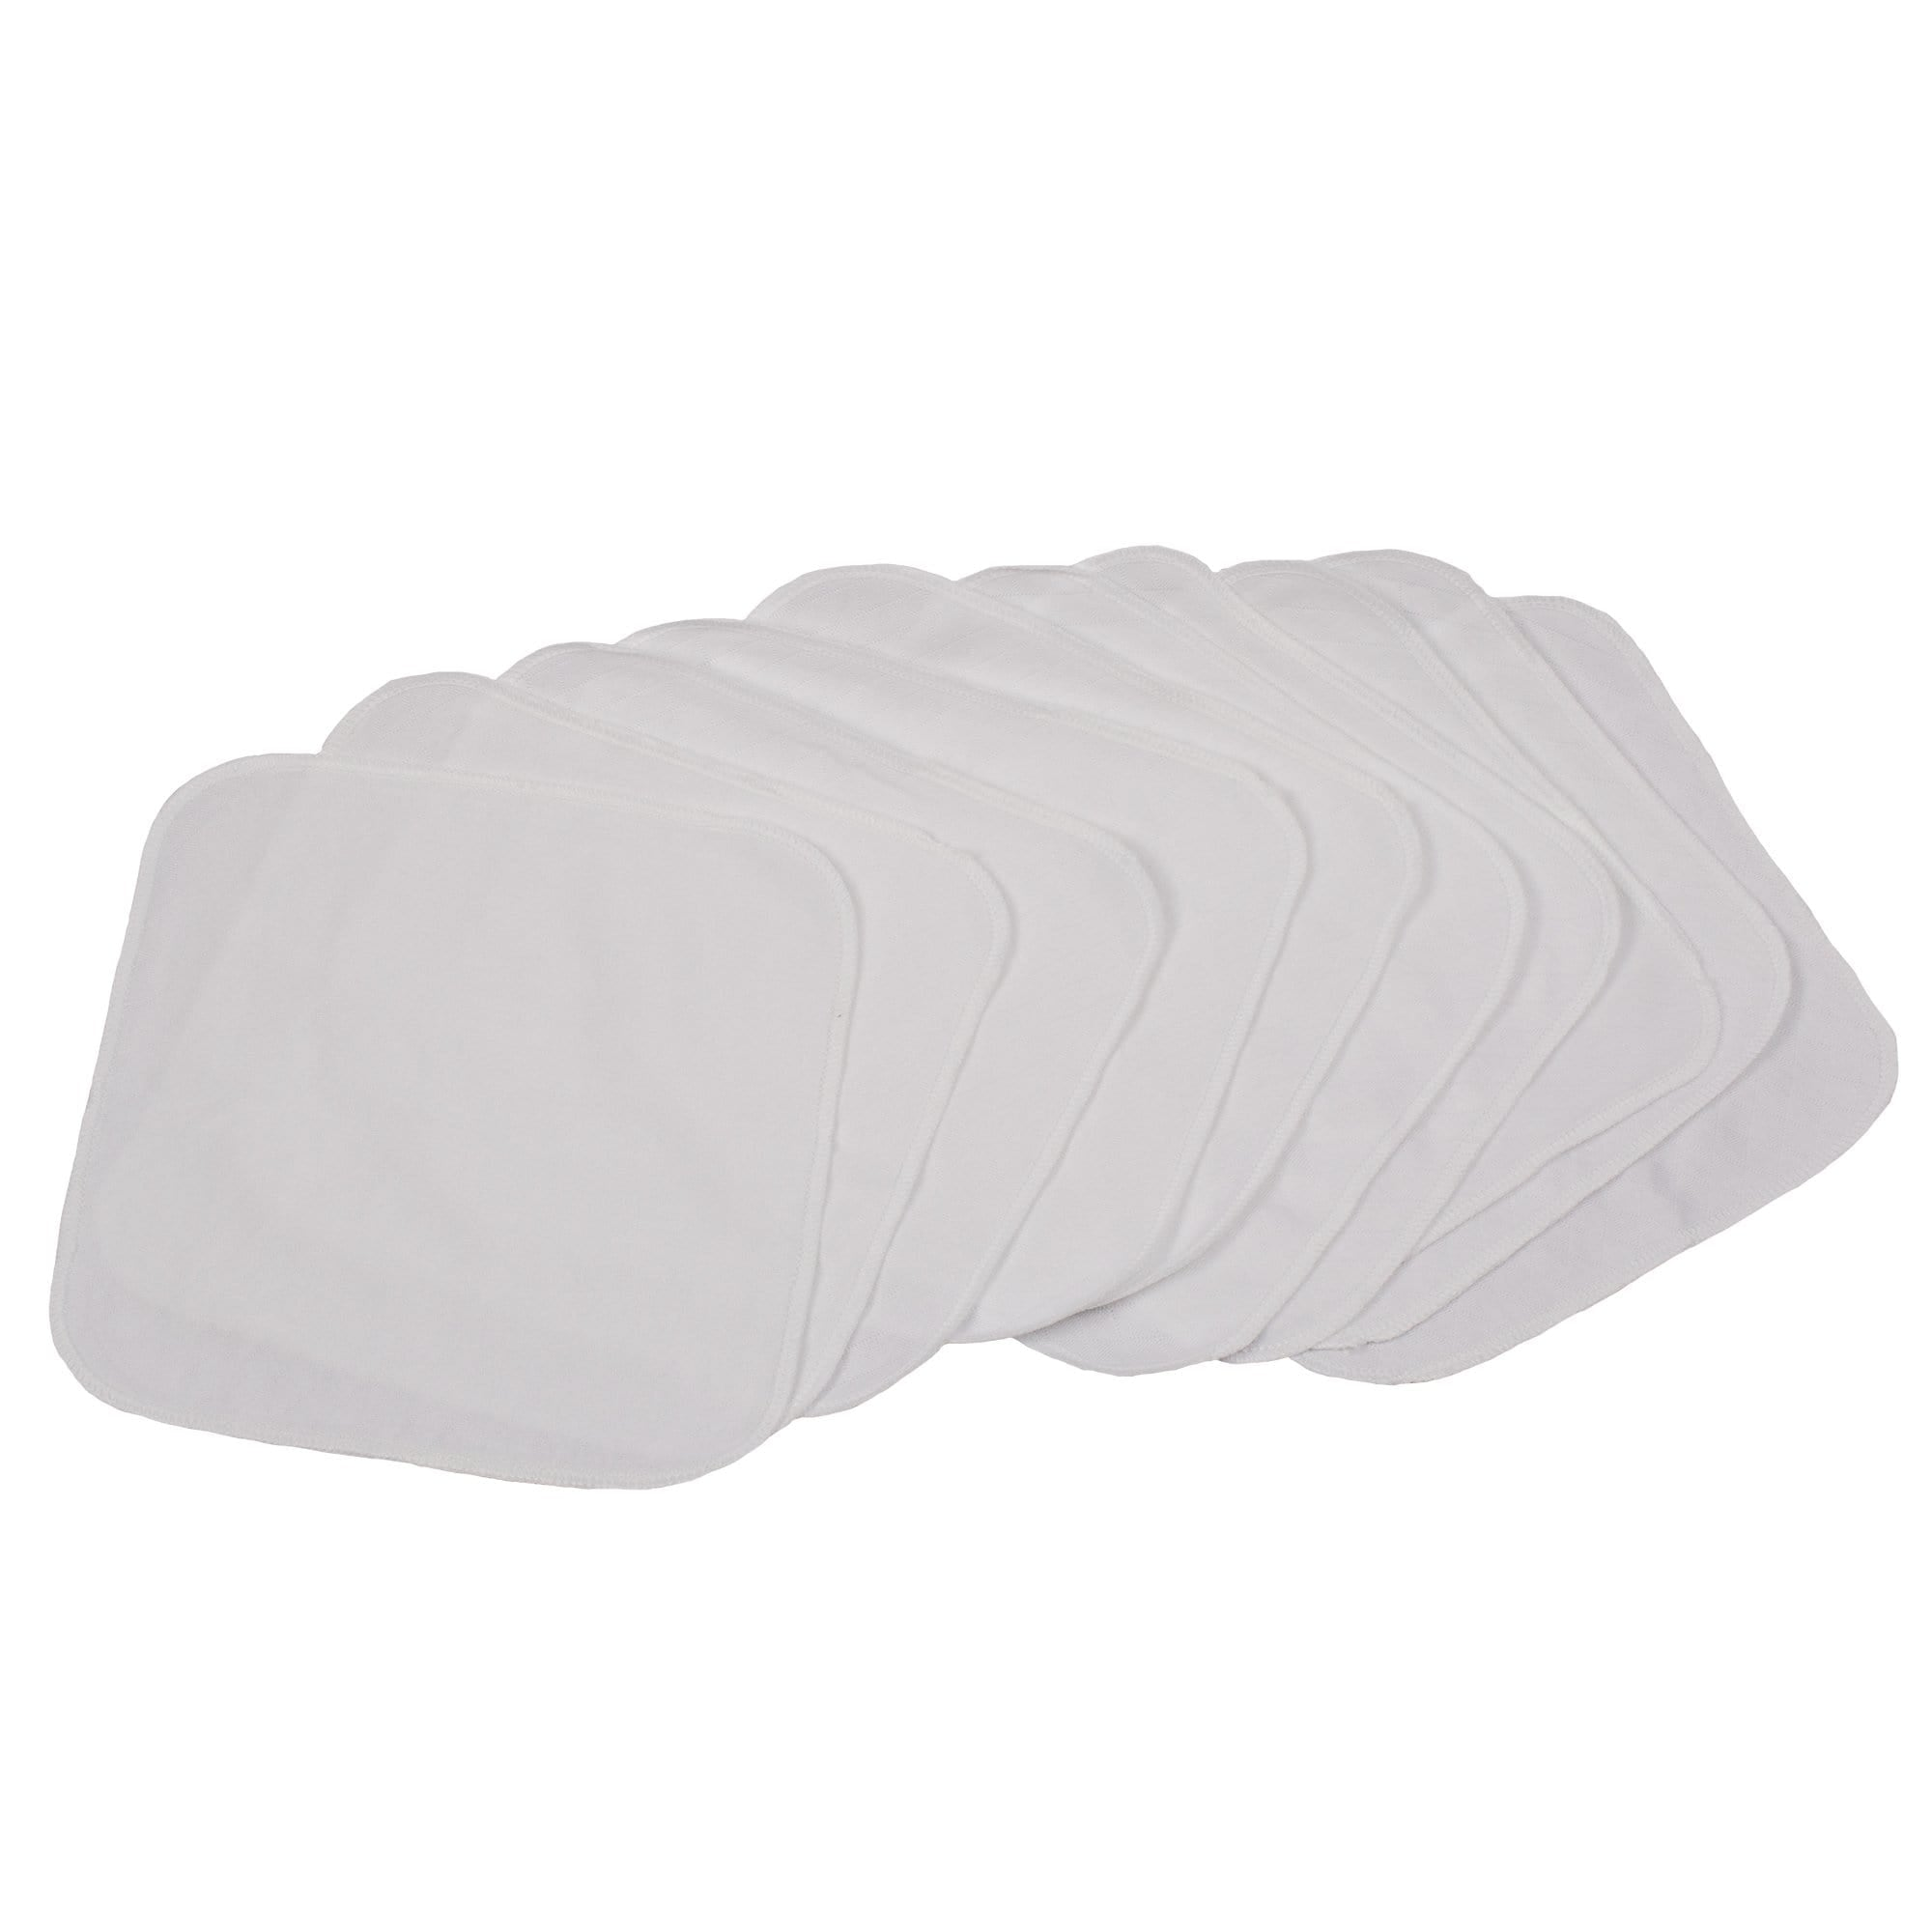 Smart Bottoms Quilted Wipes 10 Pack - Solid White